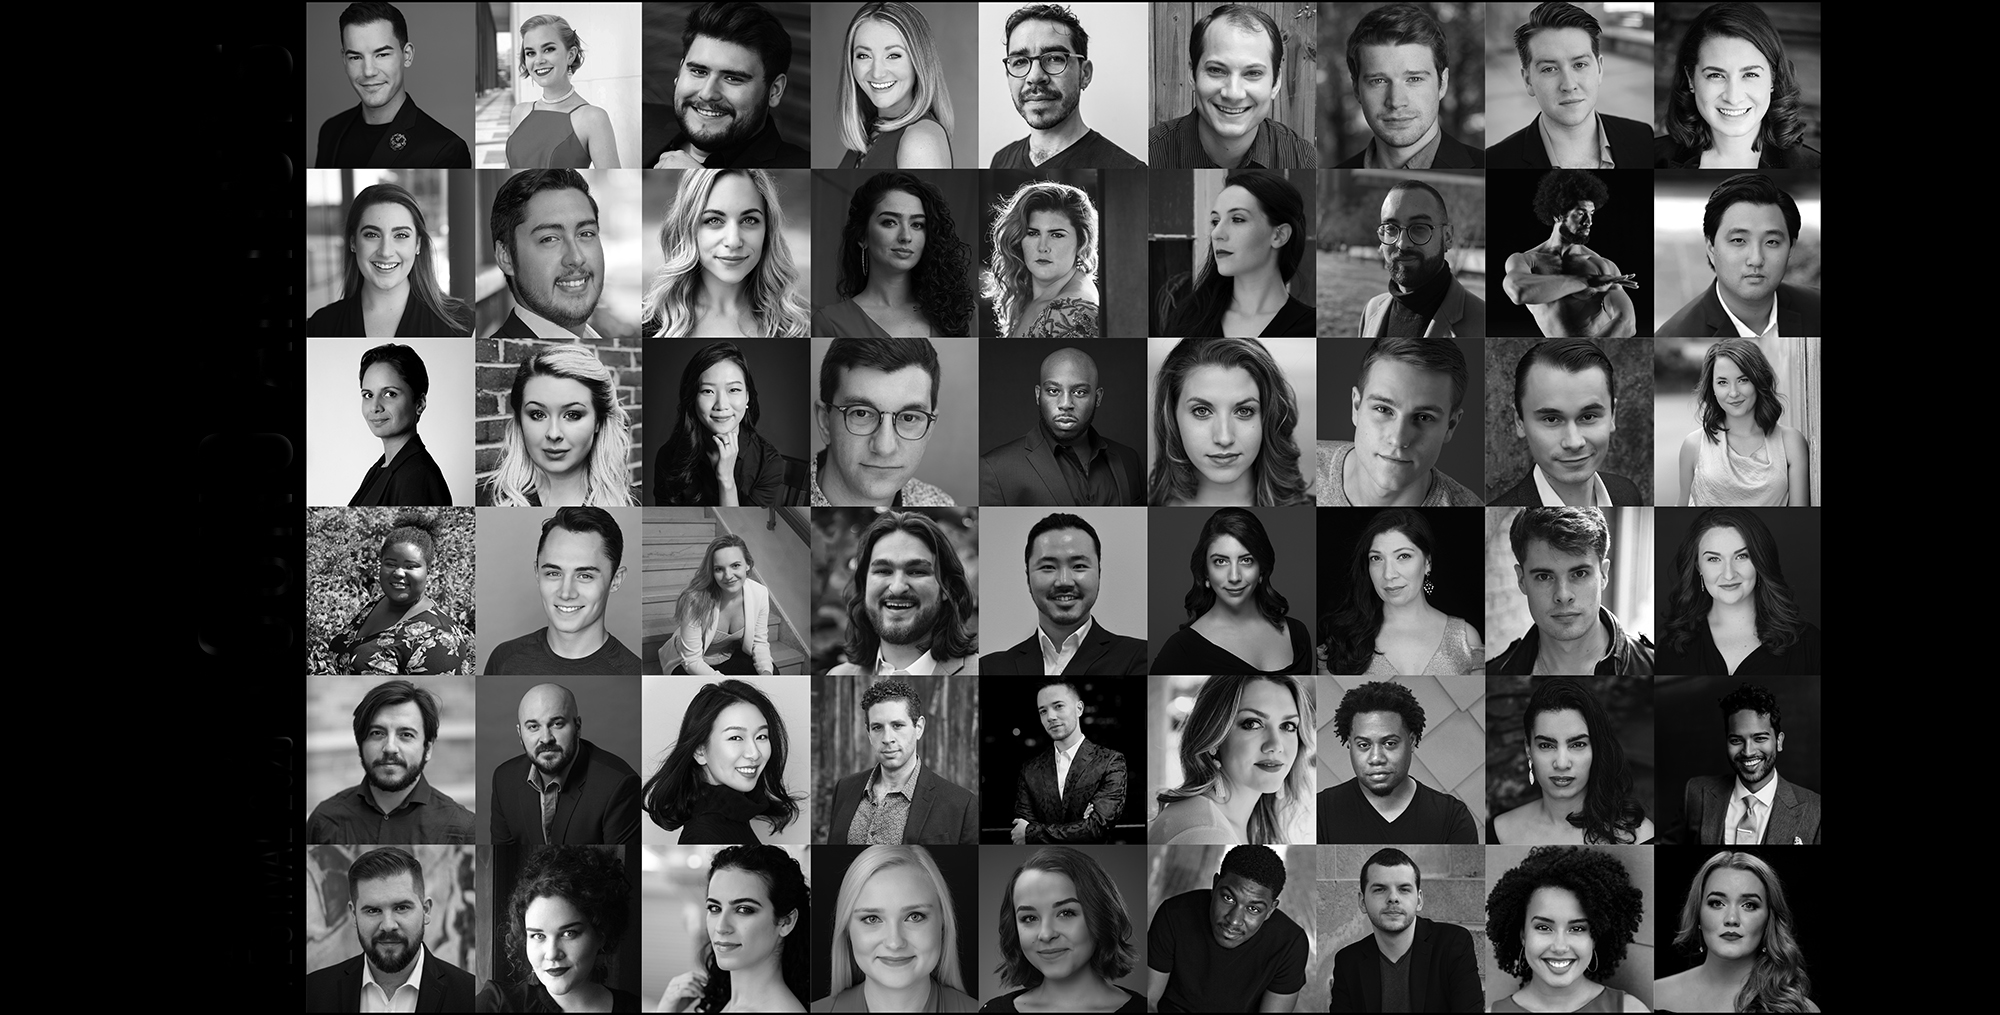 grid of black and white headshots of the 2020 Young Artists